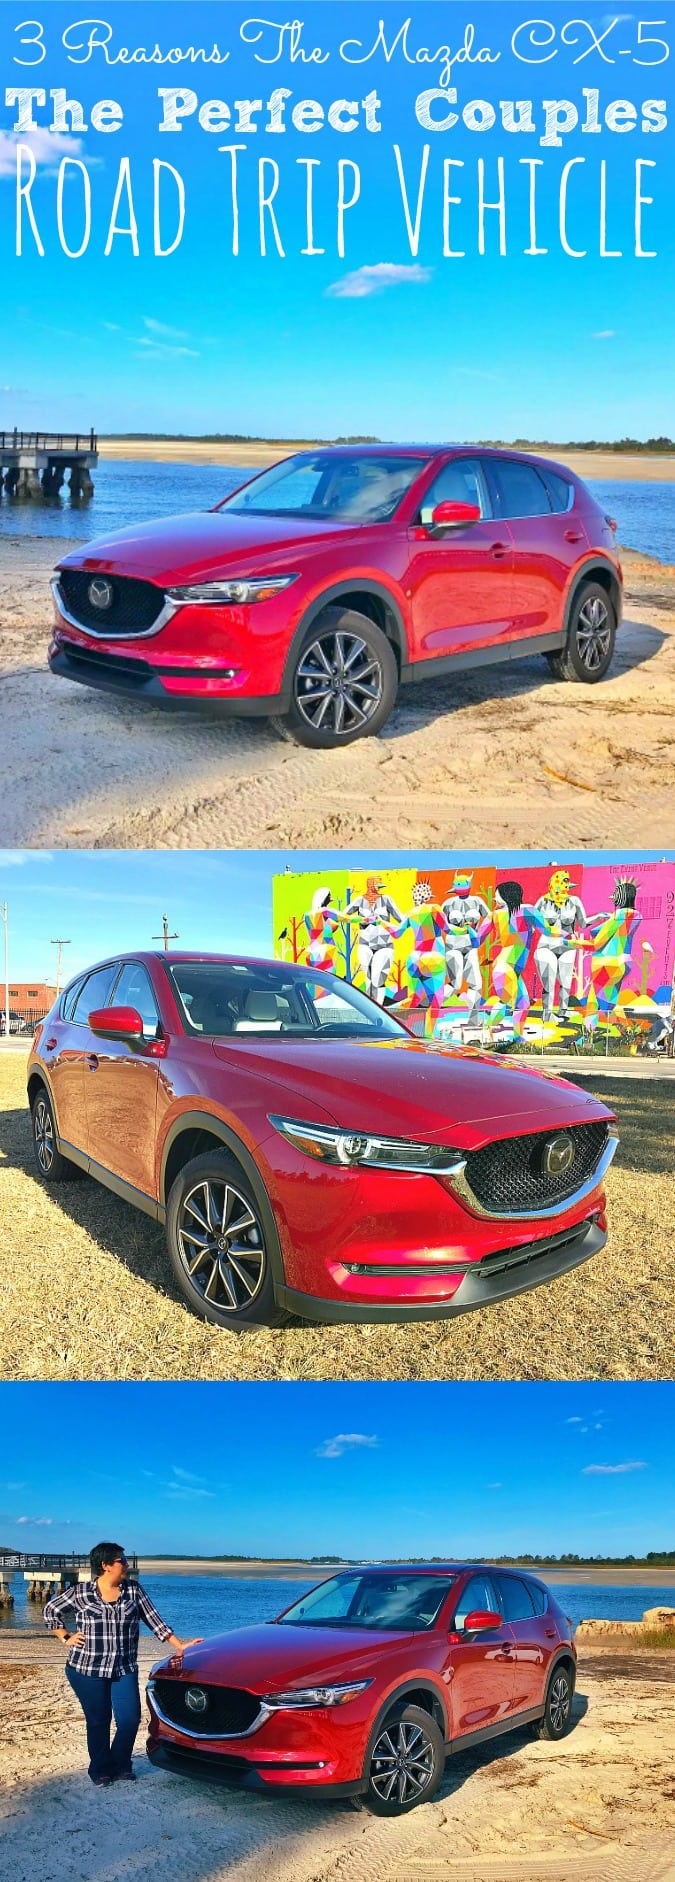 3 Reasons The Mazda CX-5 Is The Perfect Couples Road Trip Vehicle - simplytodaylife.com